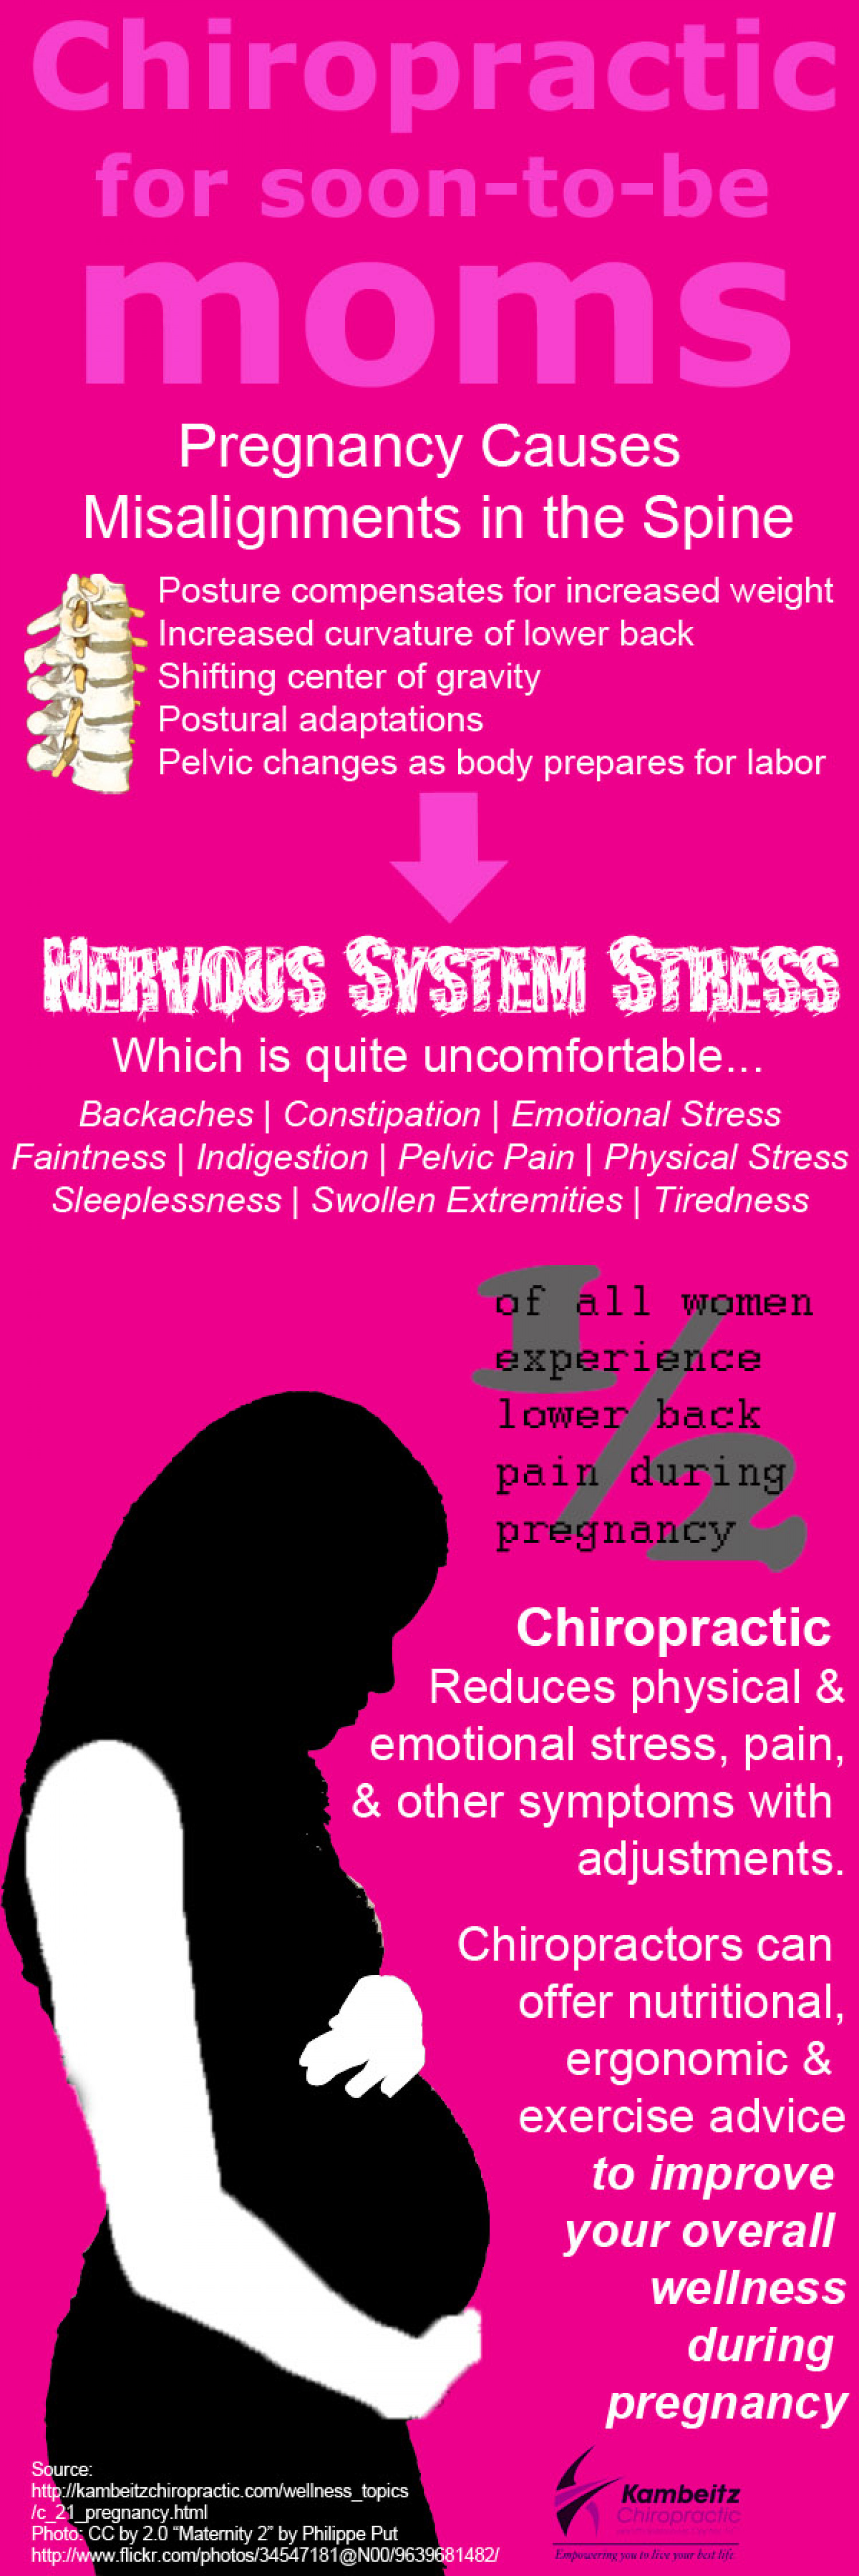 Pregnancy Pains And Stress Treated With Chiropractic Visually